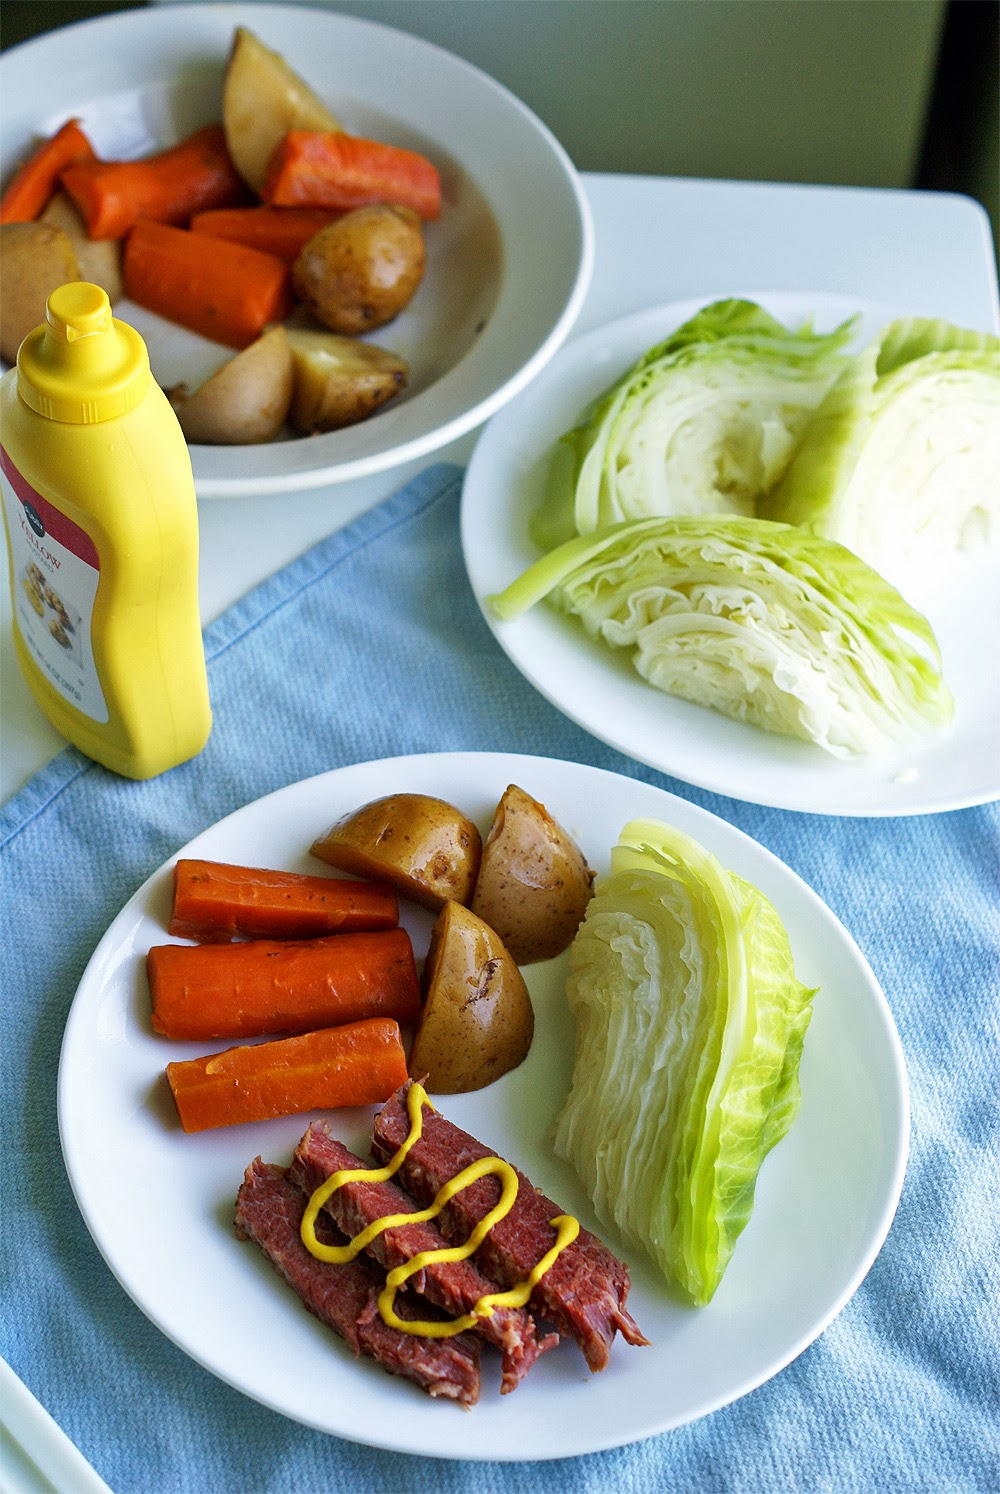 St. Paddy's Day Corned Beef & Cabbage. The juicy, salty meat and tangy yellow mustard go so well with soft, sweet carrots, boiled potatoes and crisp cabbage.